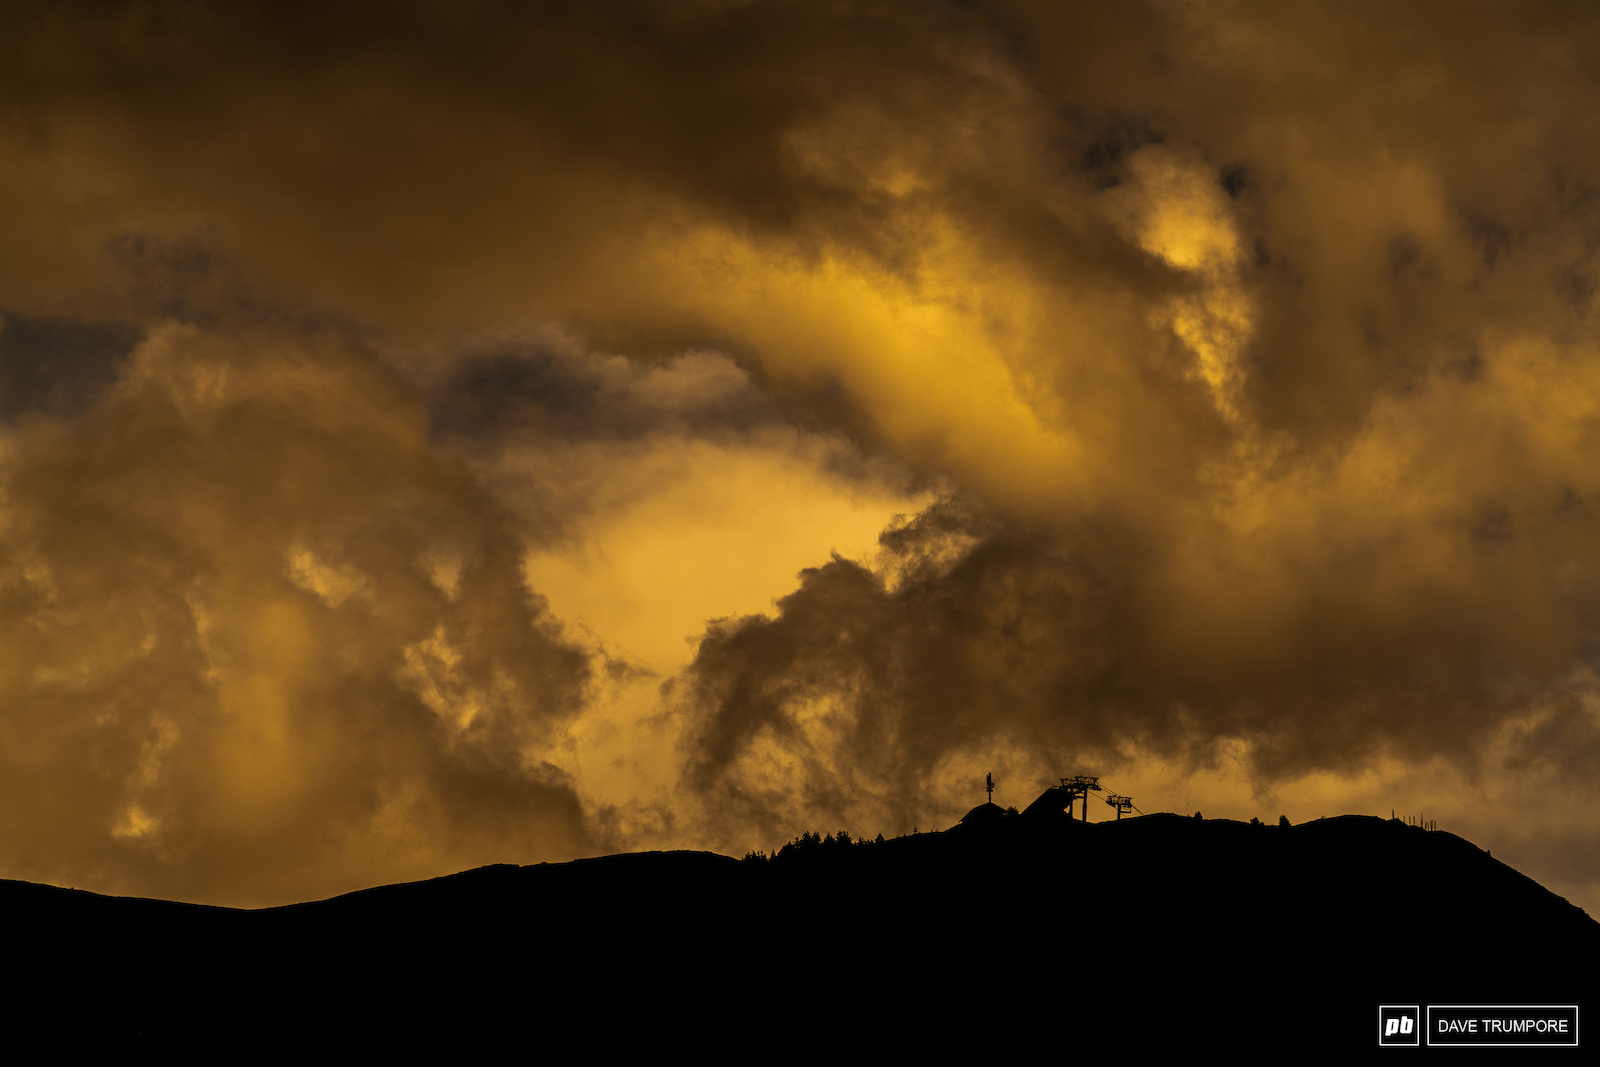 Fire in the sky in Les Orres